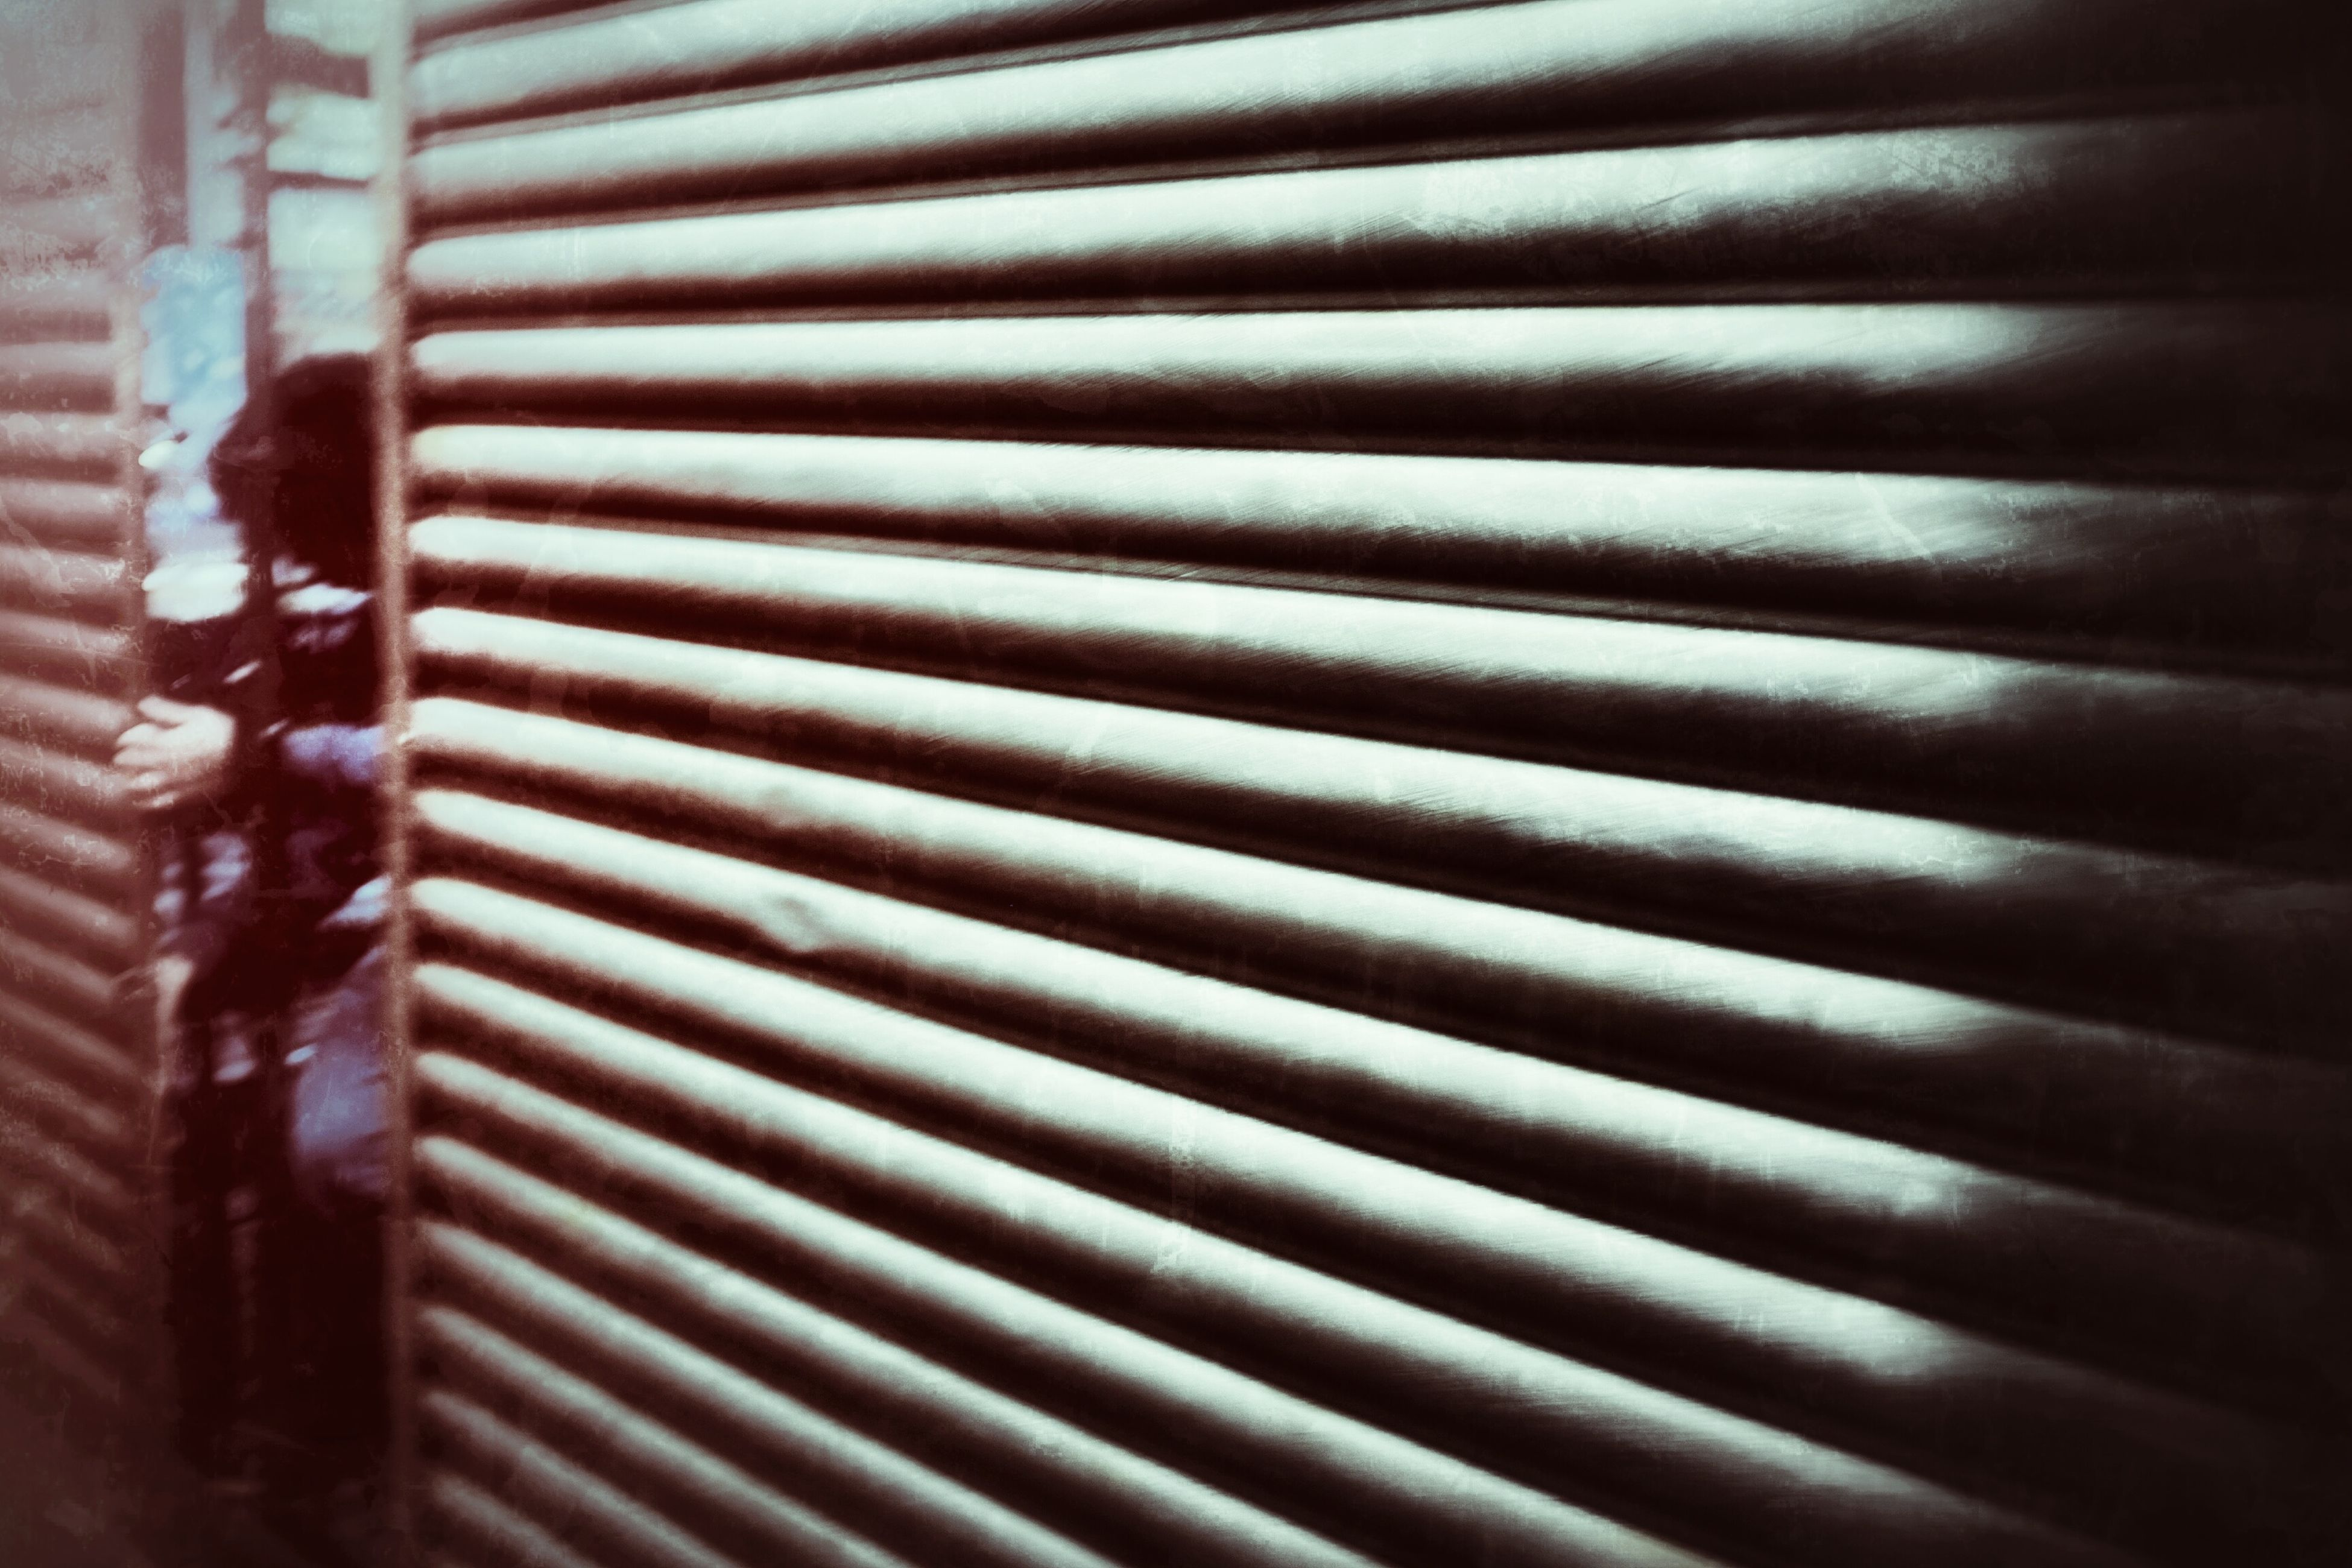 pattern, indoors, full frame, backgrounds, wall - building feature, textured, close-up, metal, built structure, design, architecture, protection, window, wall, safety, closed, wood - material, shadow, metallic, repetition